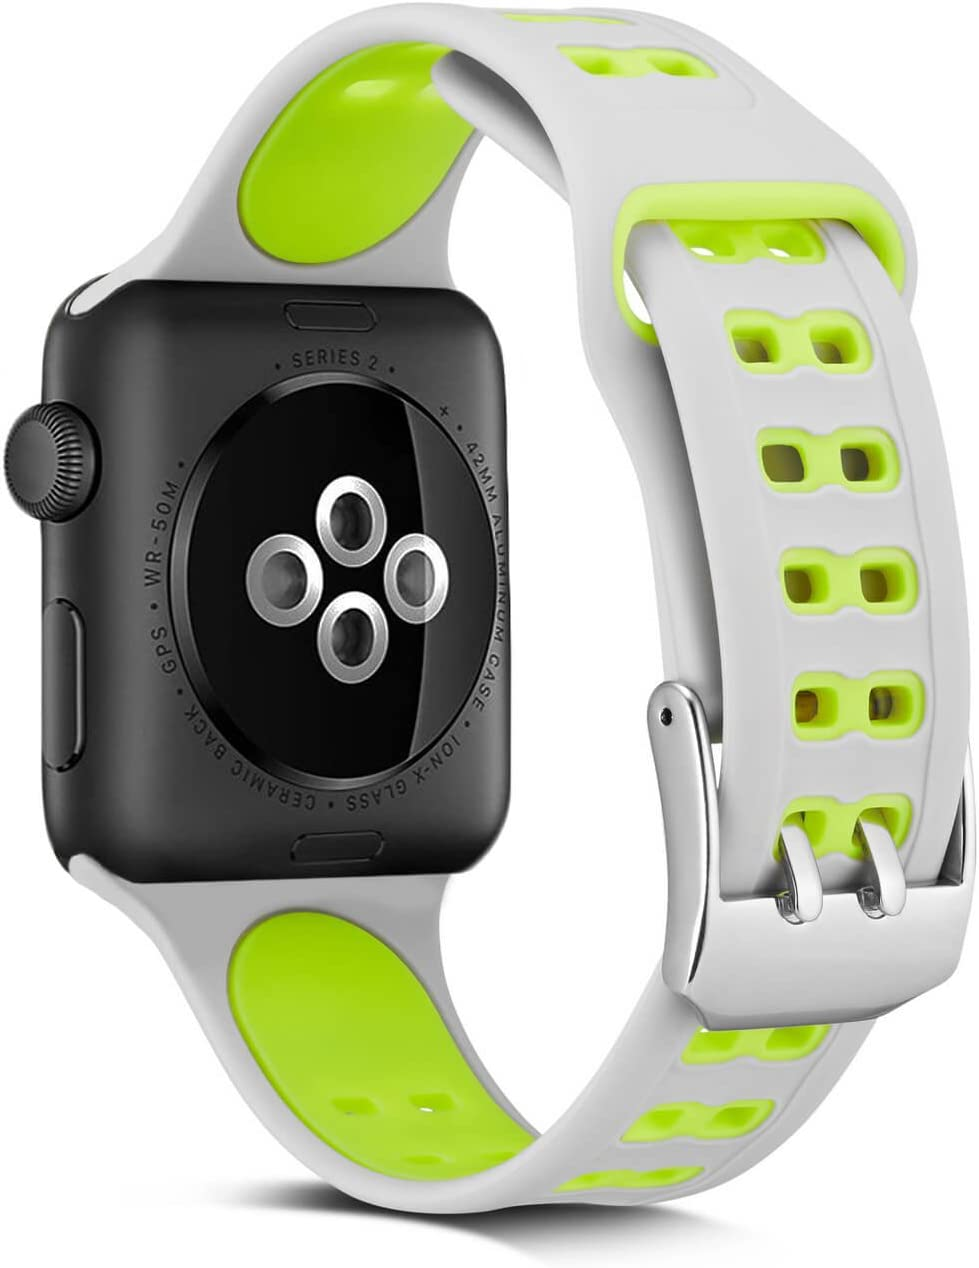 Apple Watch Sport Band Compatible iWatch 42mm, Soft Silicone Strap with Stainless Steel Buckle with Double Needle Replacement Compatible Apple Watch Sport/Series 3/2/1- Black 42MM